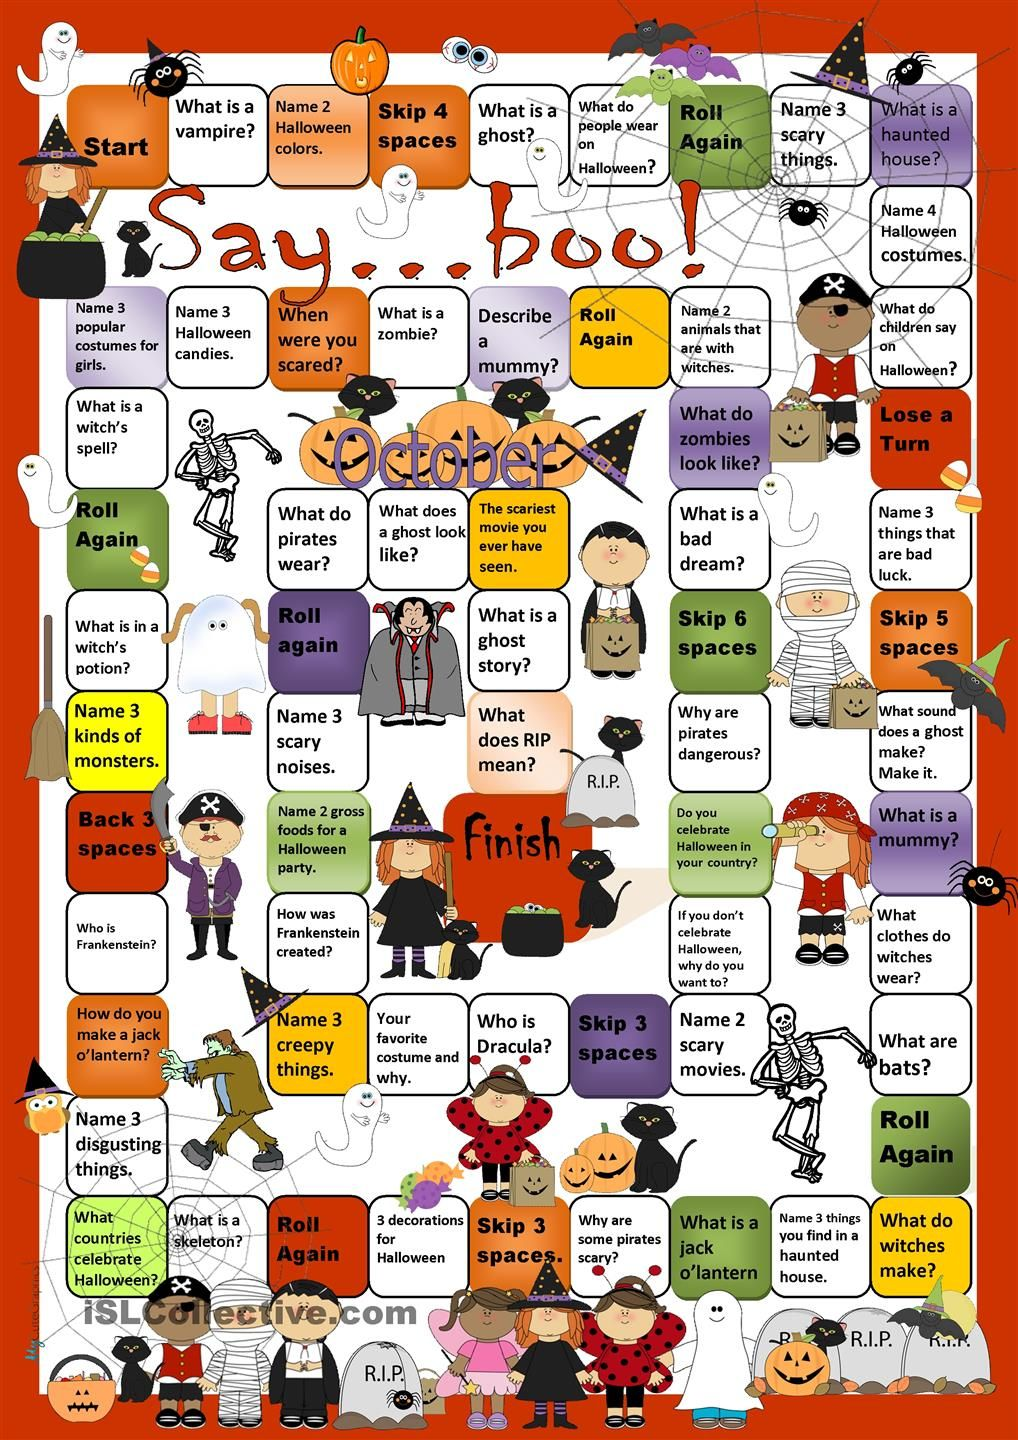 Halloween Board Game Worksheet  Free Esl Printable. Wood Office Ideas. Breakfast Ideas Chinese. Kitchen Design Lebanon Nj. Kitchen Designs Adelaide South Australia. Outfit Ideas For Life In Color. Creative Paper Quilling Ideas. Landscape Ideas Around Porch. Shower Rod Ideas